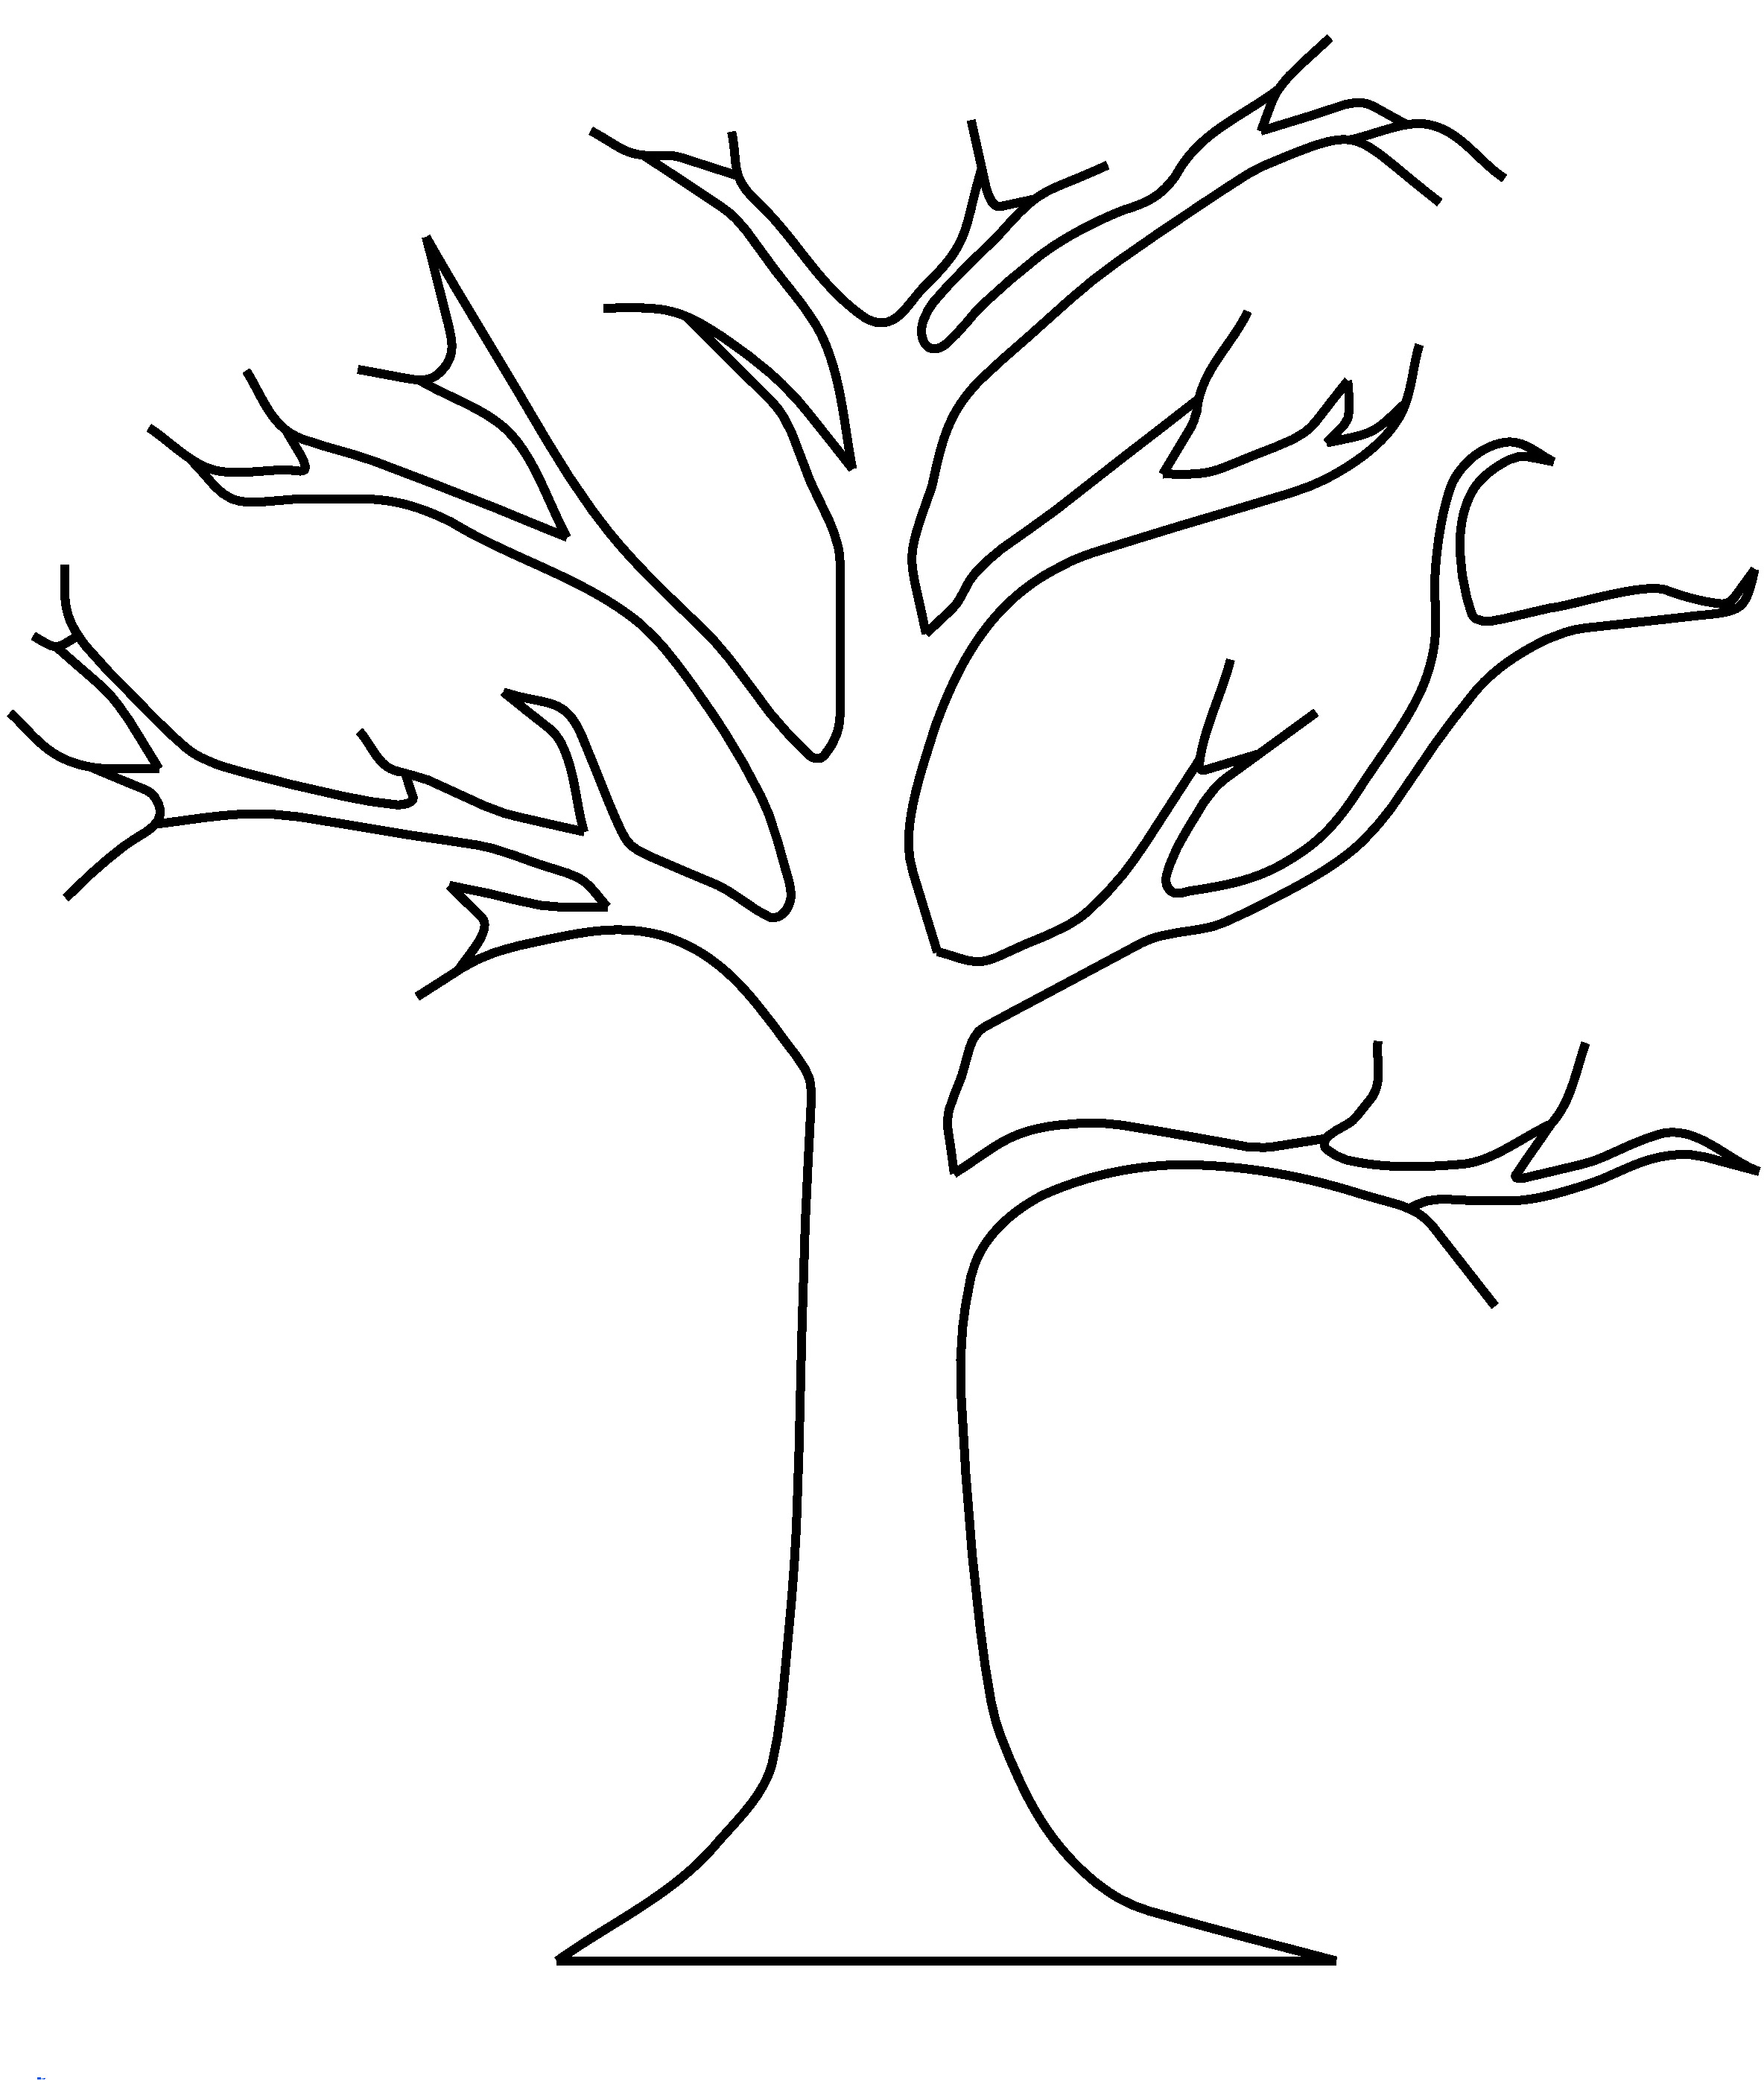 2368x2794 Apple Tree Template.dgn Apple Tree Without Leaves Coloring Pages